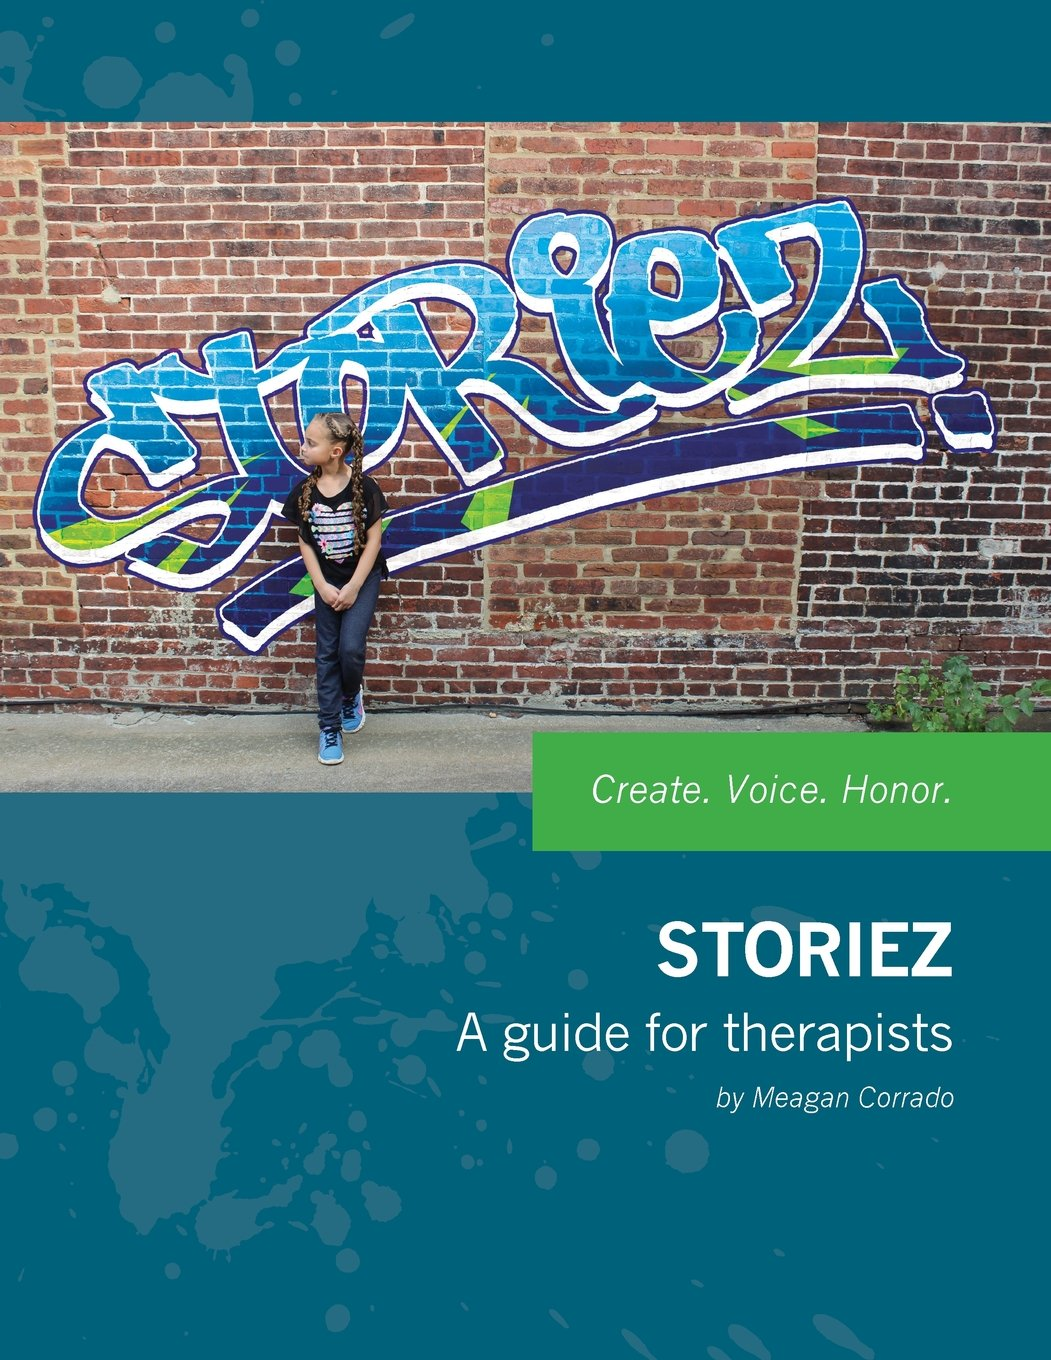 Storiez: A Guide for Therapists by Meagan Corrado